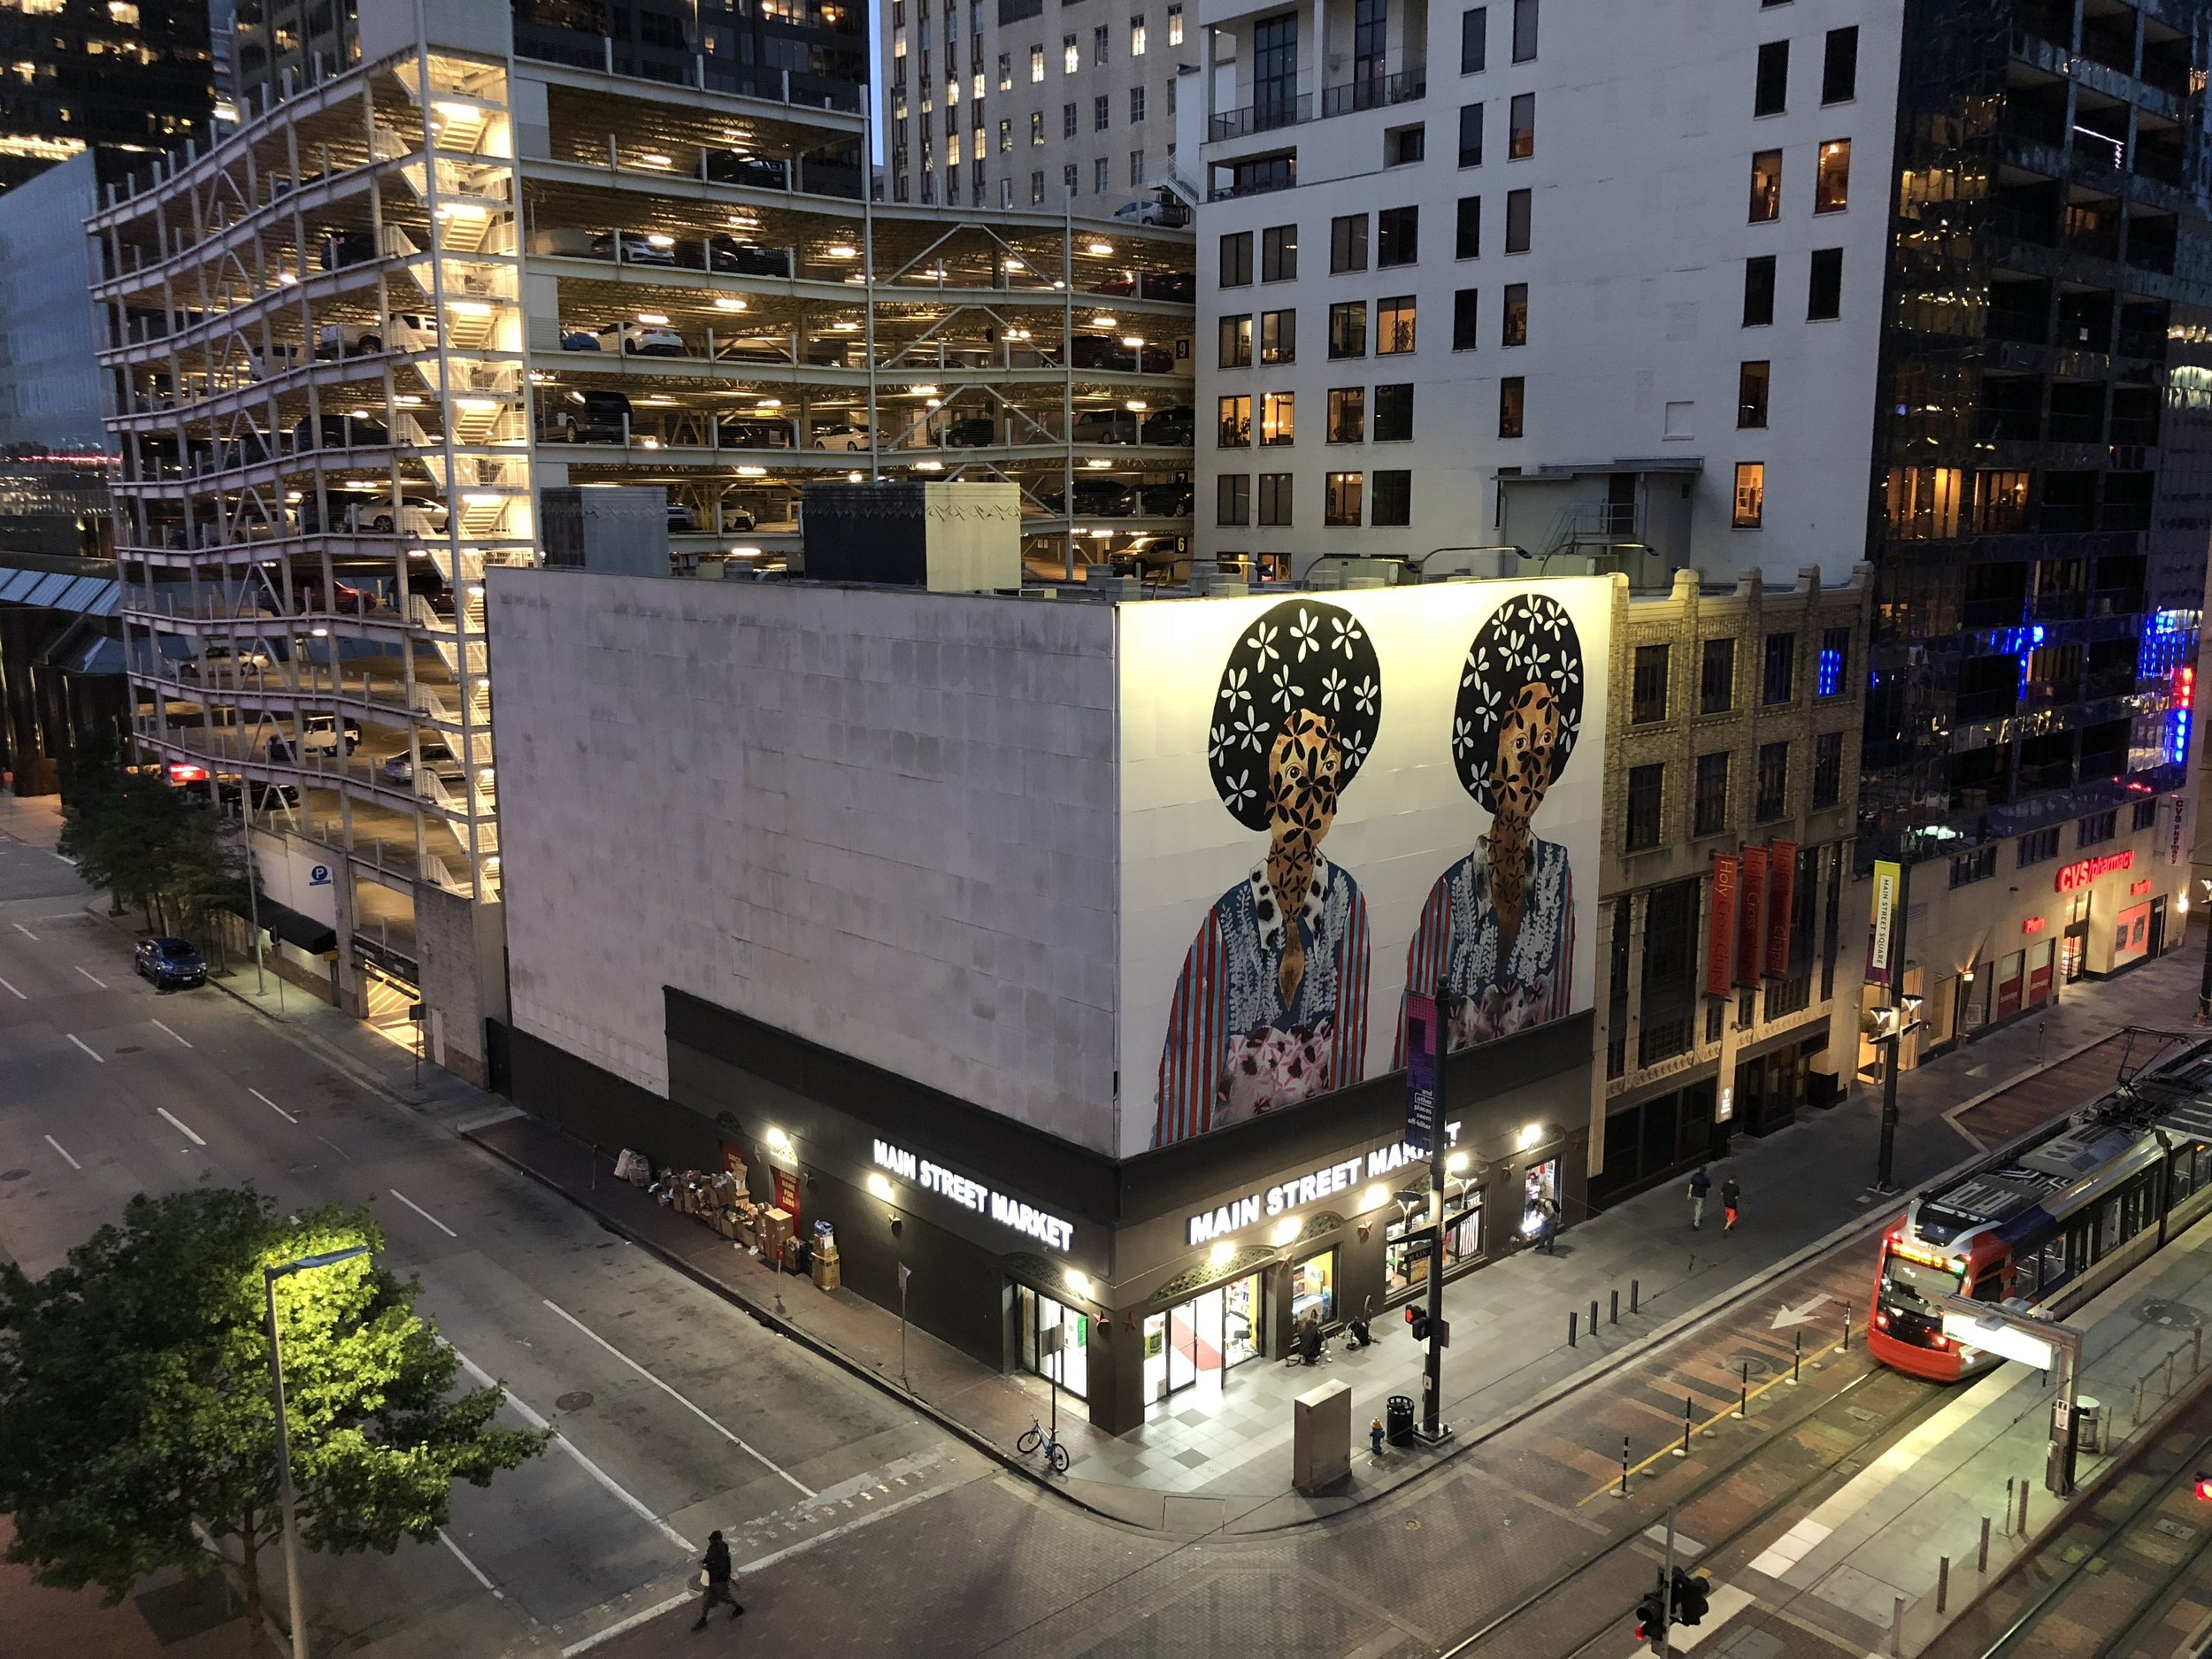 Jasmine Zelaya,  Twins  Main Street Marquee Night View,, 2018, 40' x 60' (vertical x horizontal) Vinyl affixed on the Façade of 901 Main Street in downtown Houston's Main Street Square. Photo Credit: Morris Malakoff